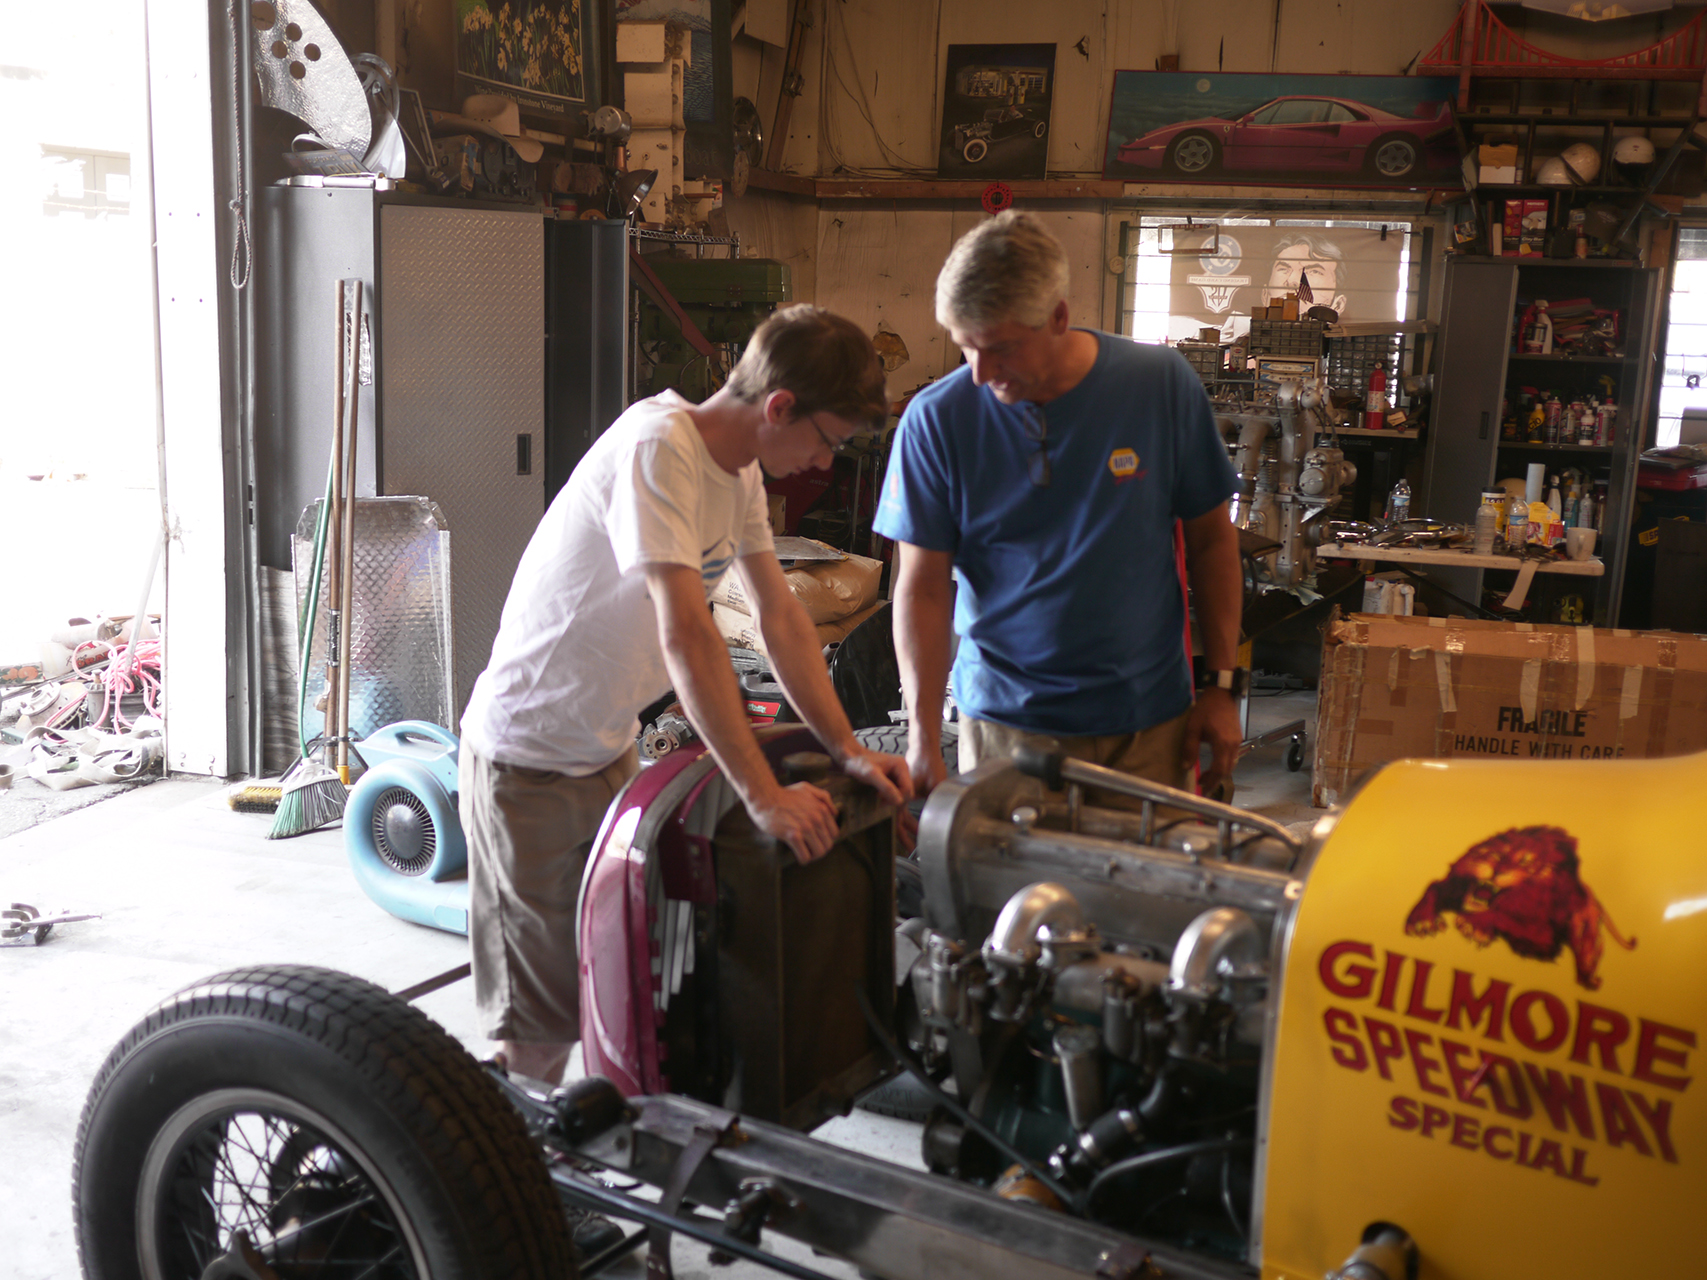 Long and Mitch hooper confer on making alterations to the radiator mount on the Gilmore Speedway Special